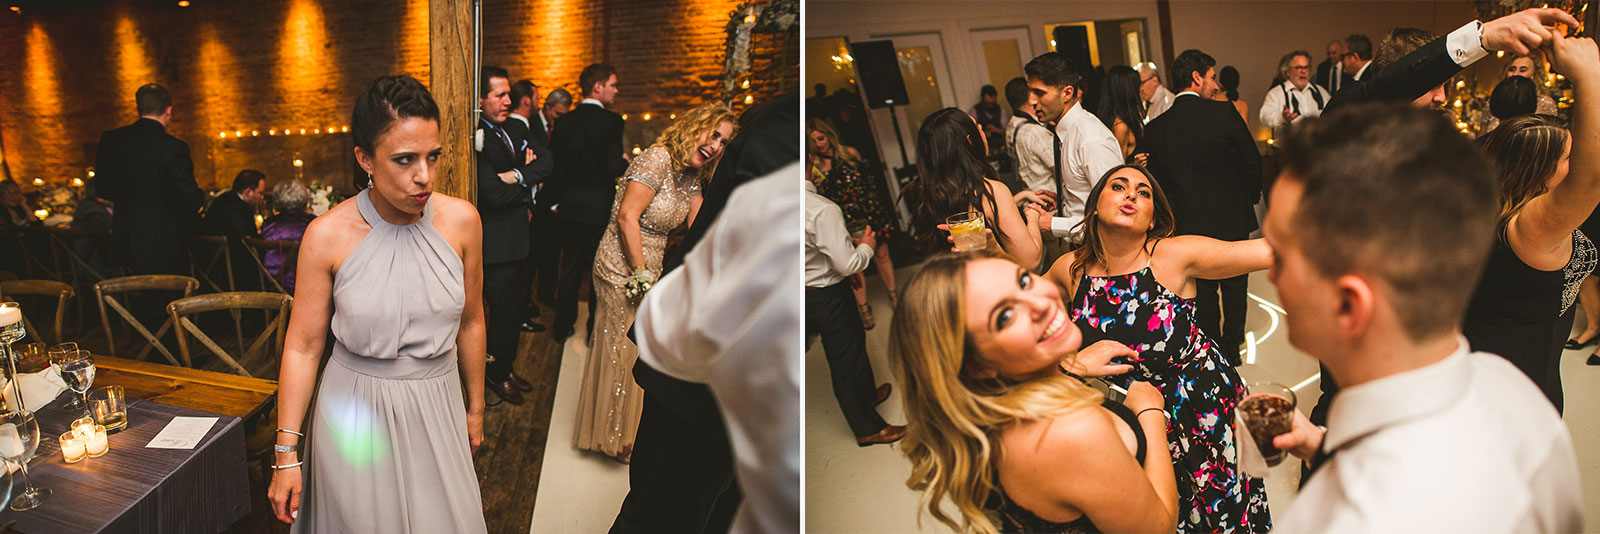 75 wedding at gallery 1028 - Chicago Wedding Photography at Gallery 1028 // Courtnie + David